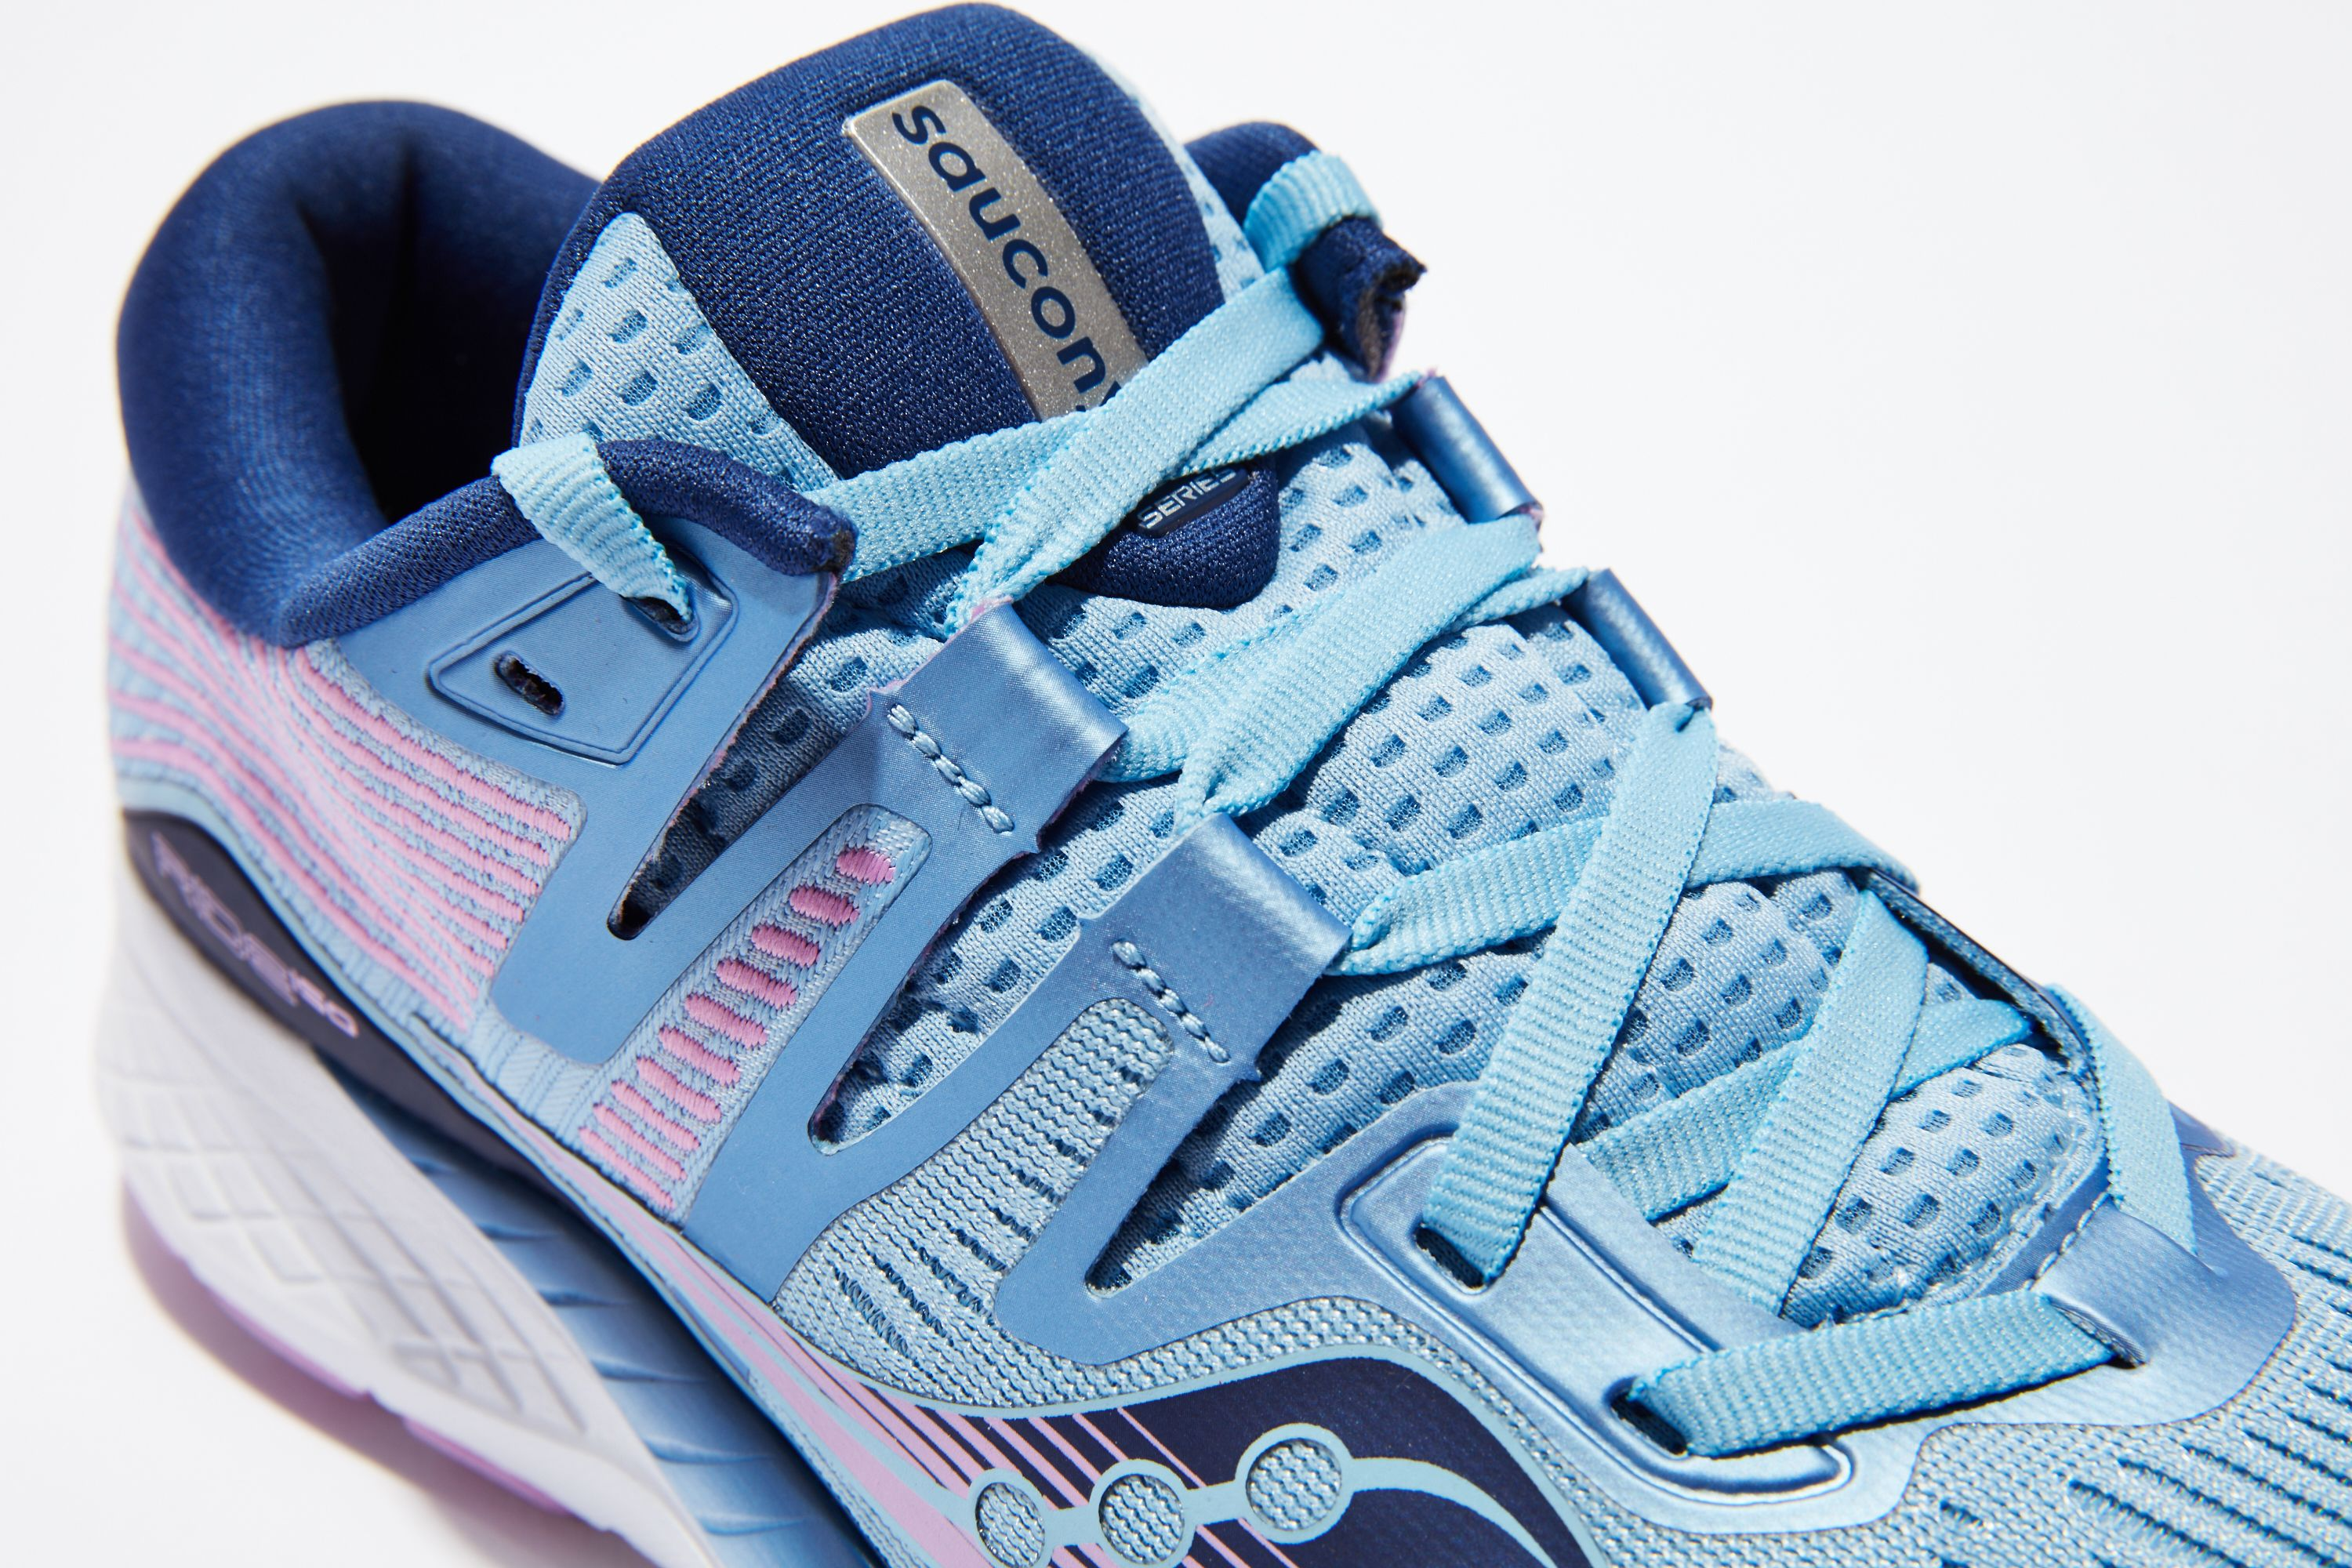 Soft Meets Fast in the New Saucony Ride ISO